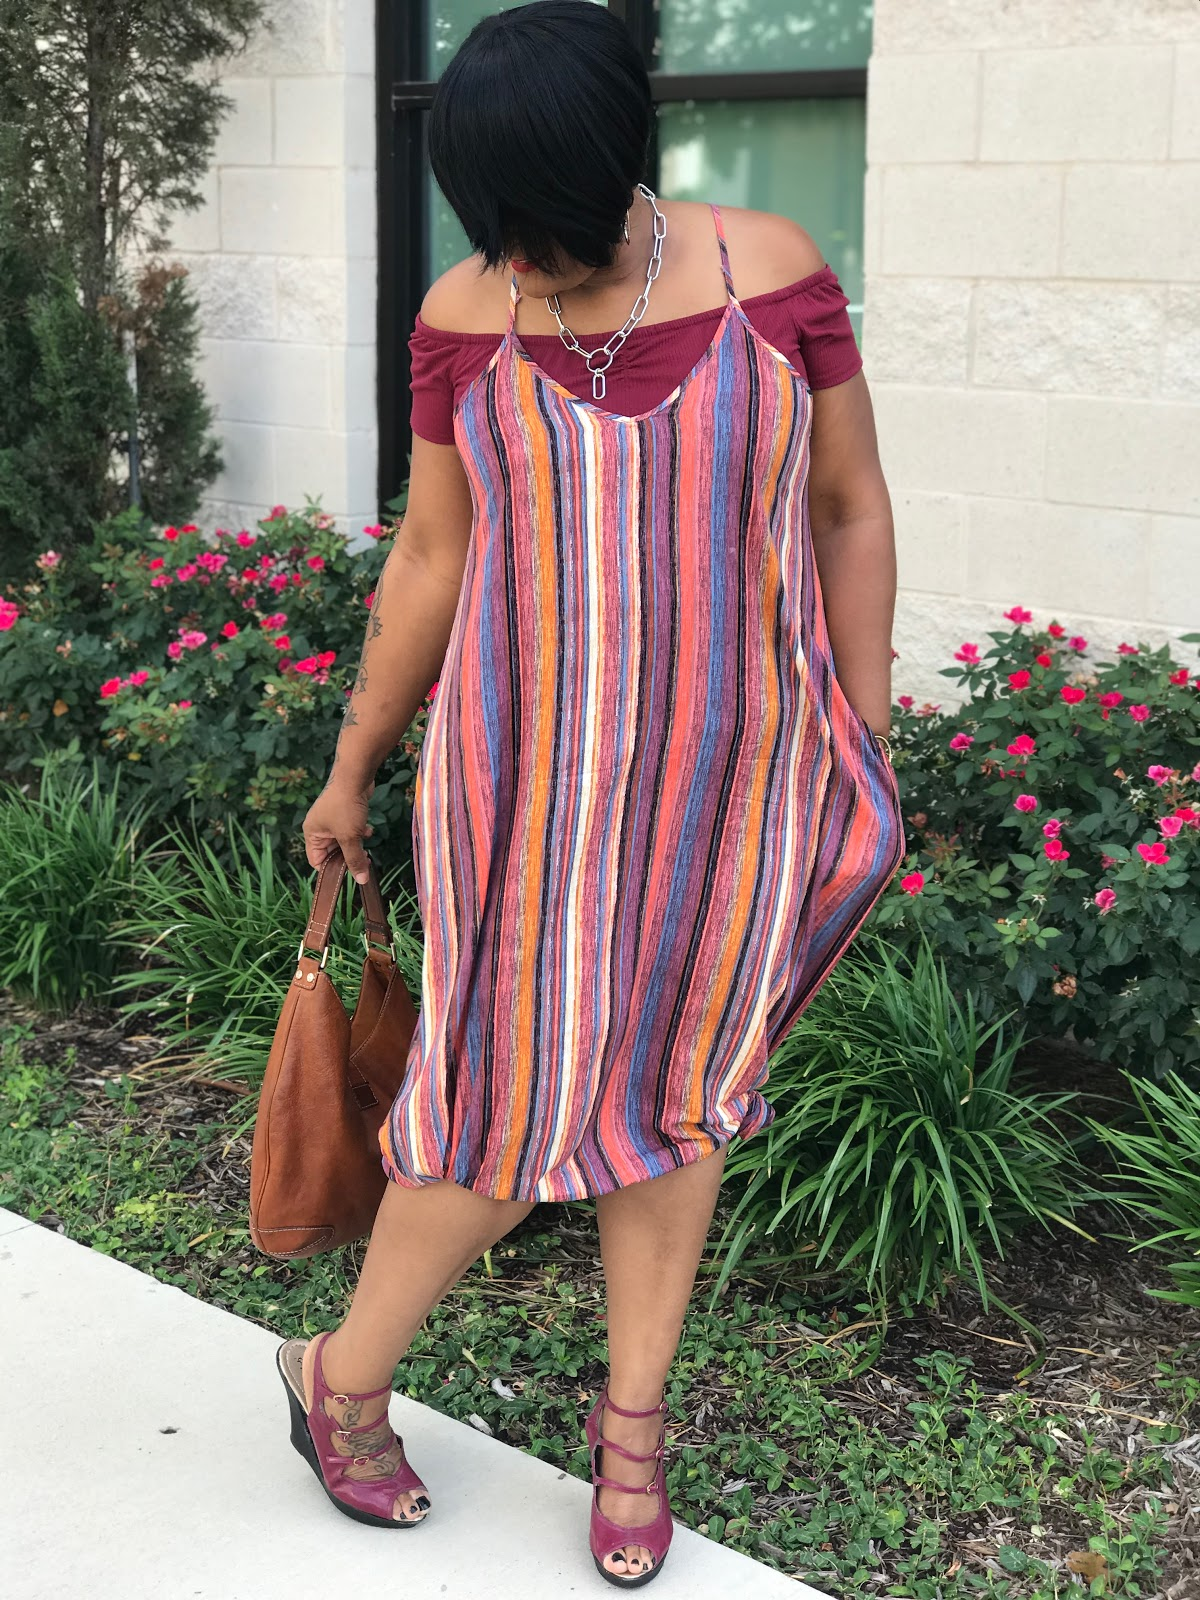 Image: Woman sharing total look and outfit with old shoes, new dress and accessories